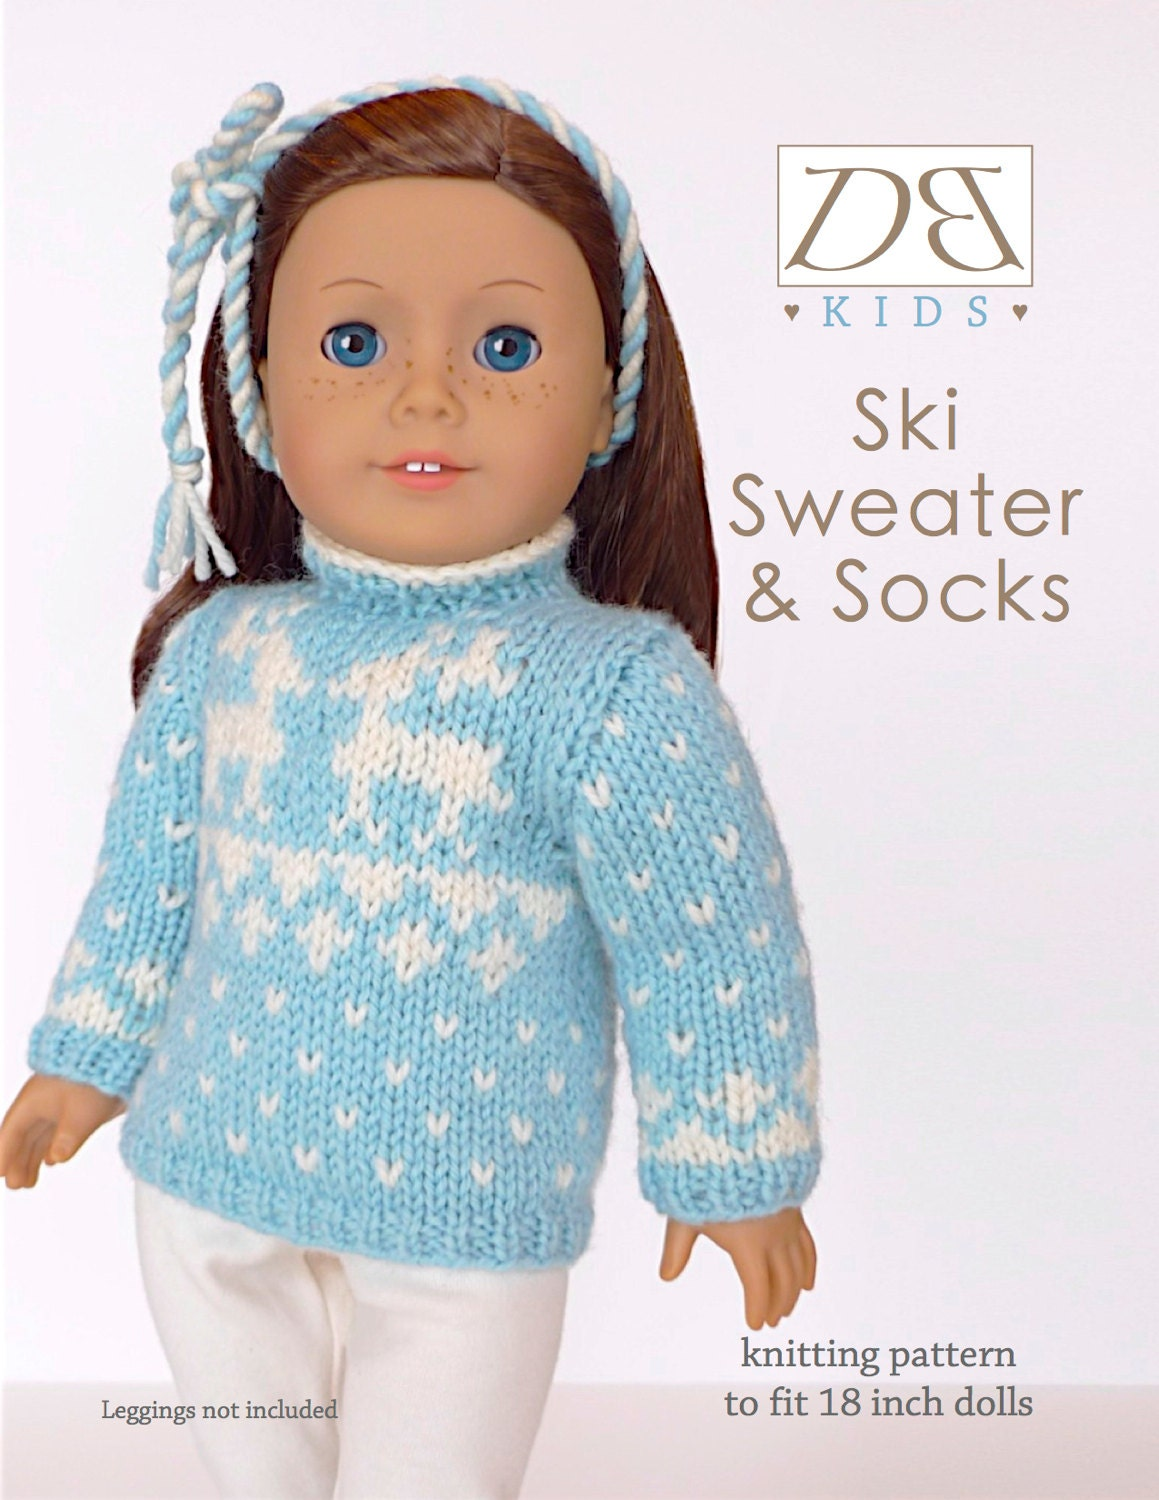 Knitting Pattern 18 Doll Sweater : Doll clothes knitting pattern PDF for 18 inch American Girl type doll (AG dol...